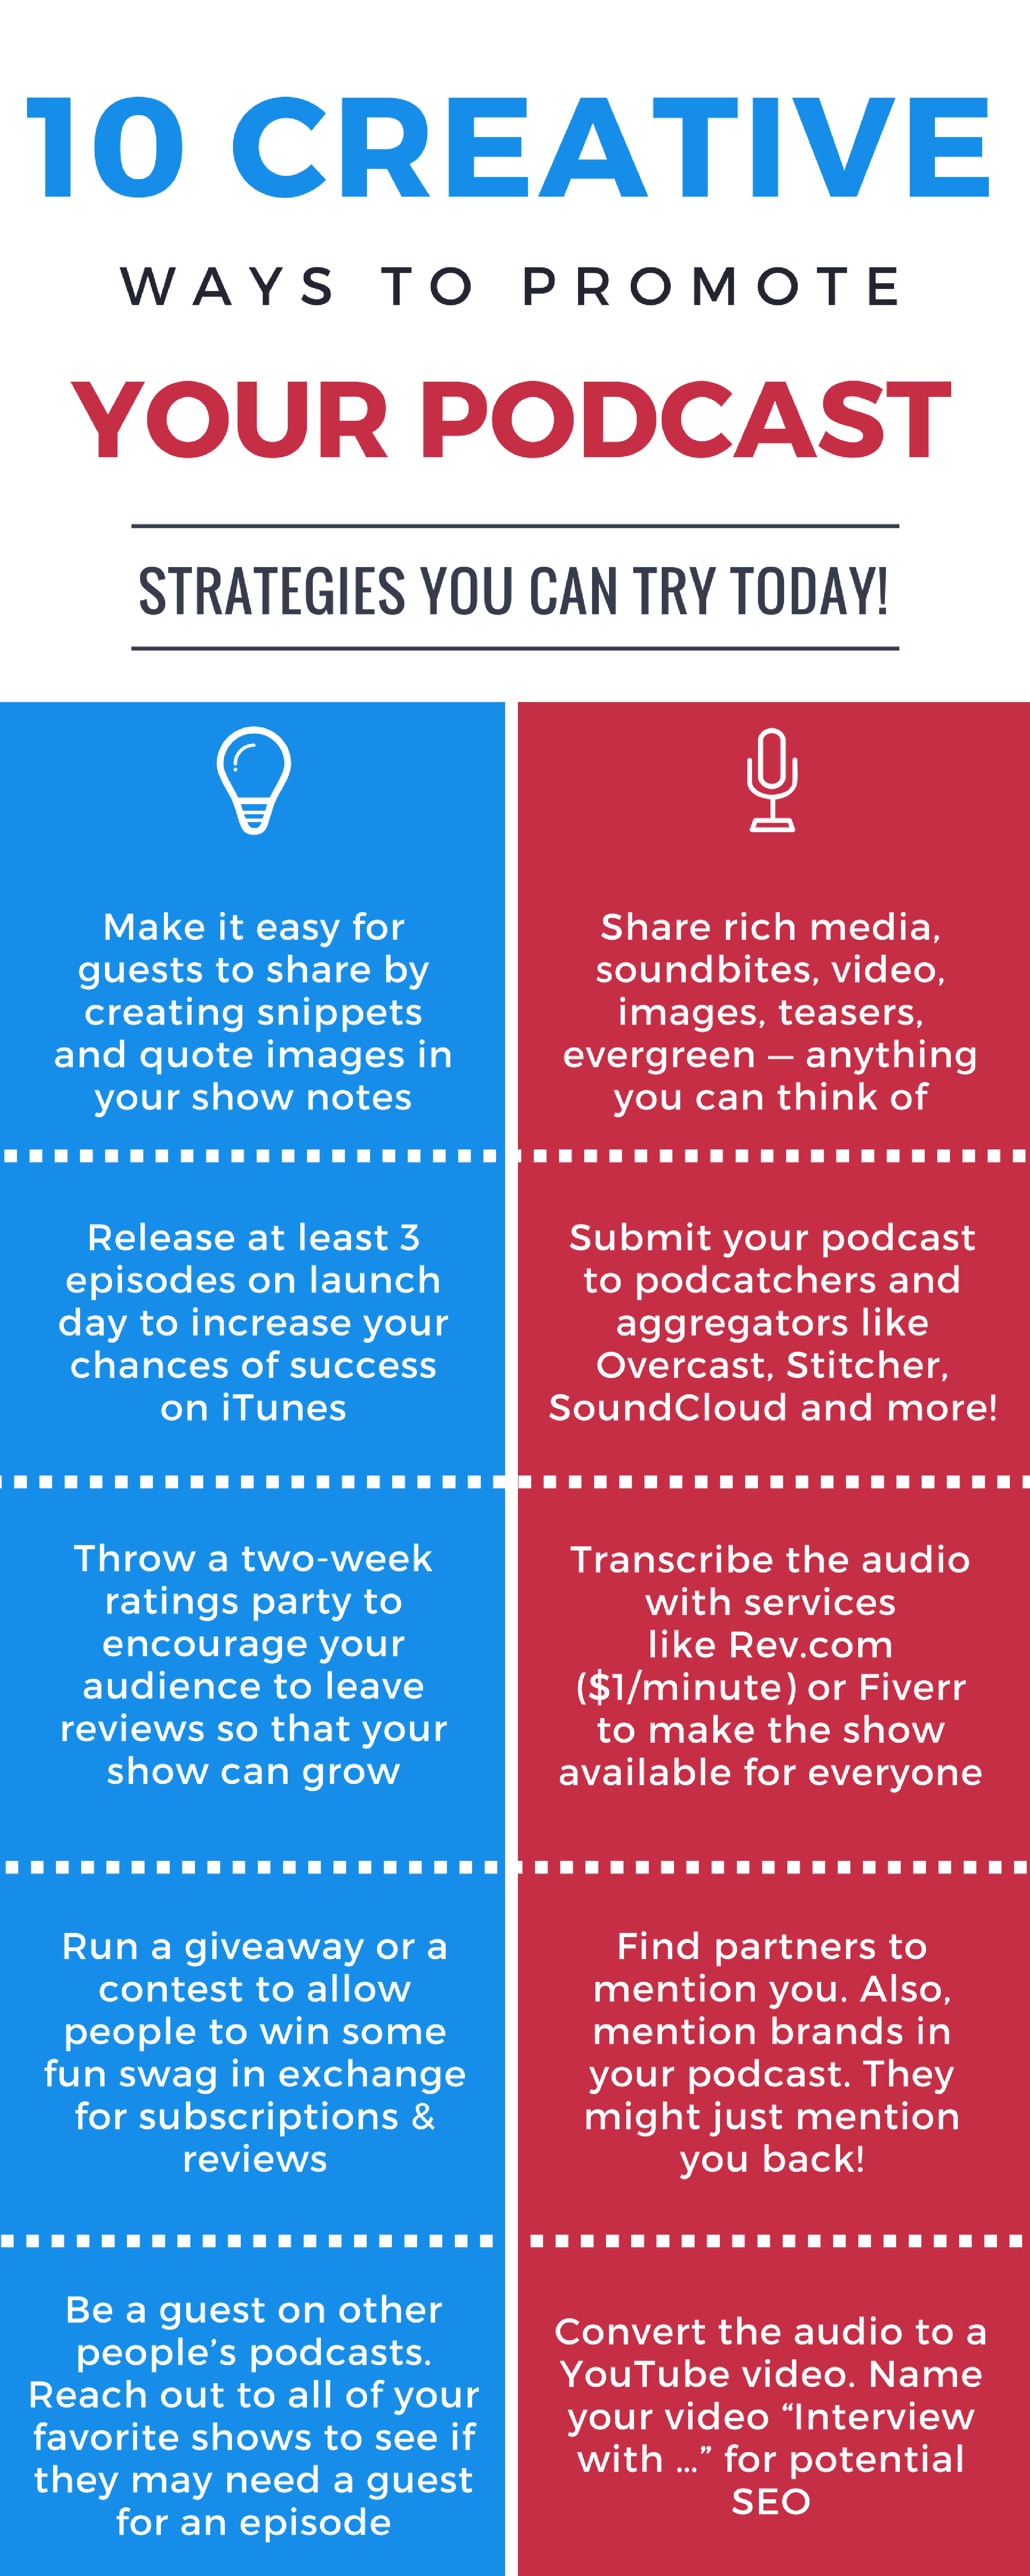 10 Ways to Promote a Podcast